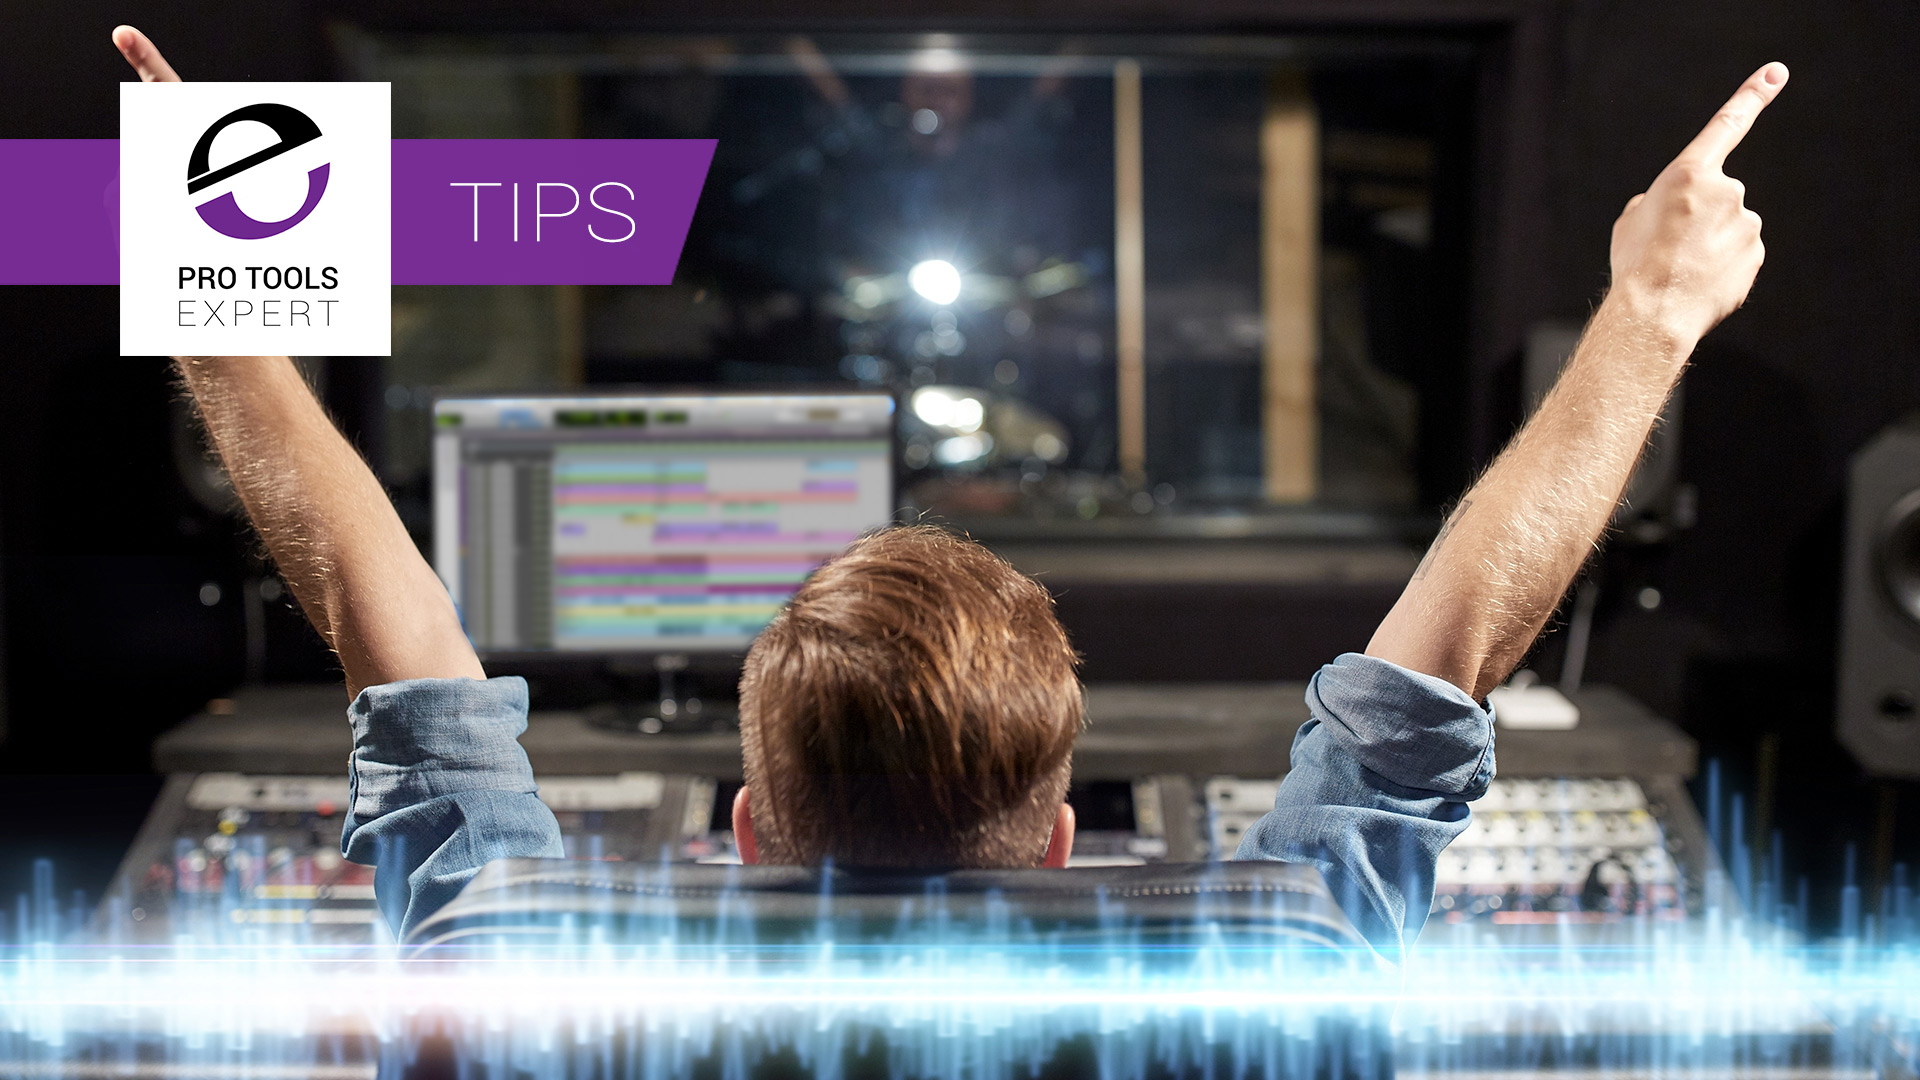 Quick-Tip-Articles-To-Help-You-Improve-Your-Mixing-Workflows-In-Pro-Tools---Learn-To-Mix-Smarter-And-More-Creatively-Today.jpg